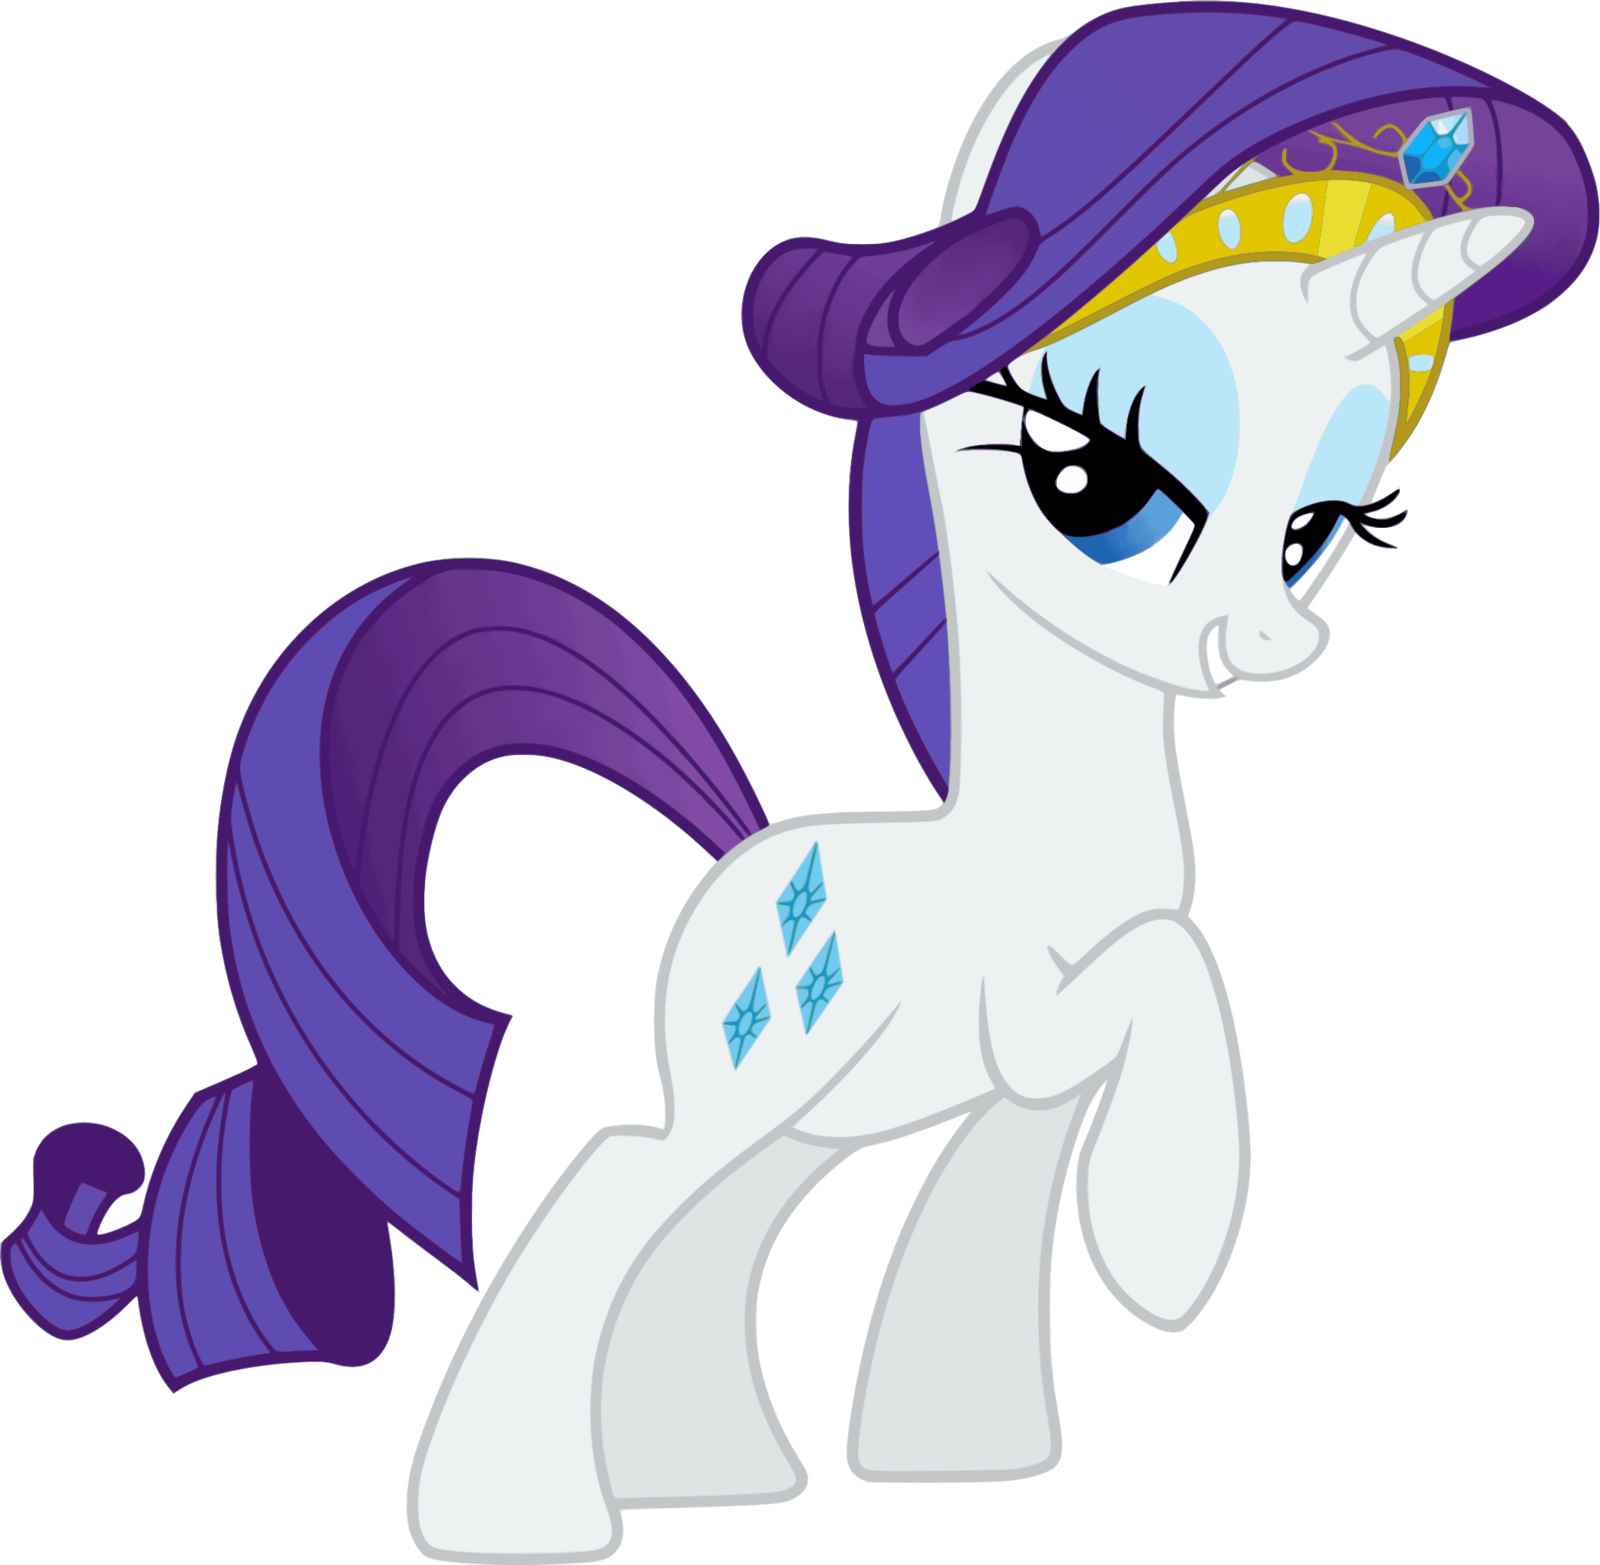 Rarity - Which zodiac type do you think she is? *Character analysis only please*